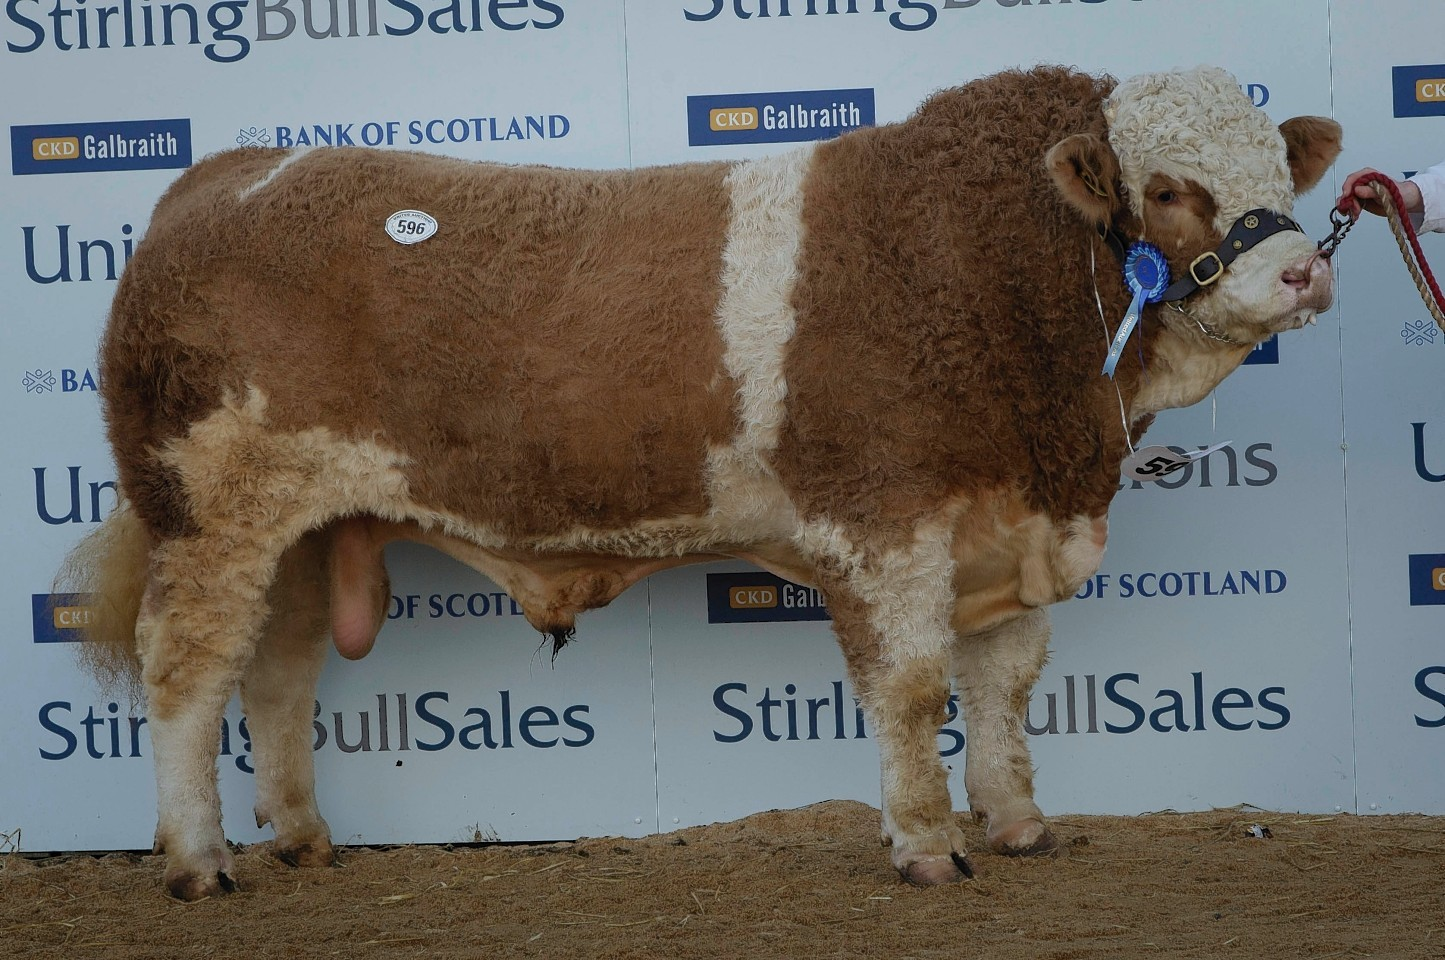 The top priced Simmental